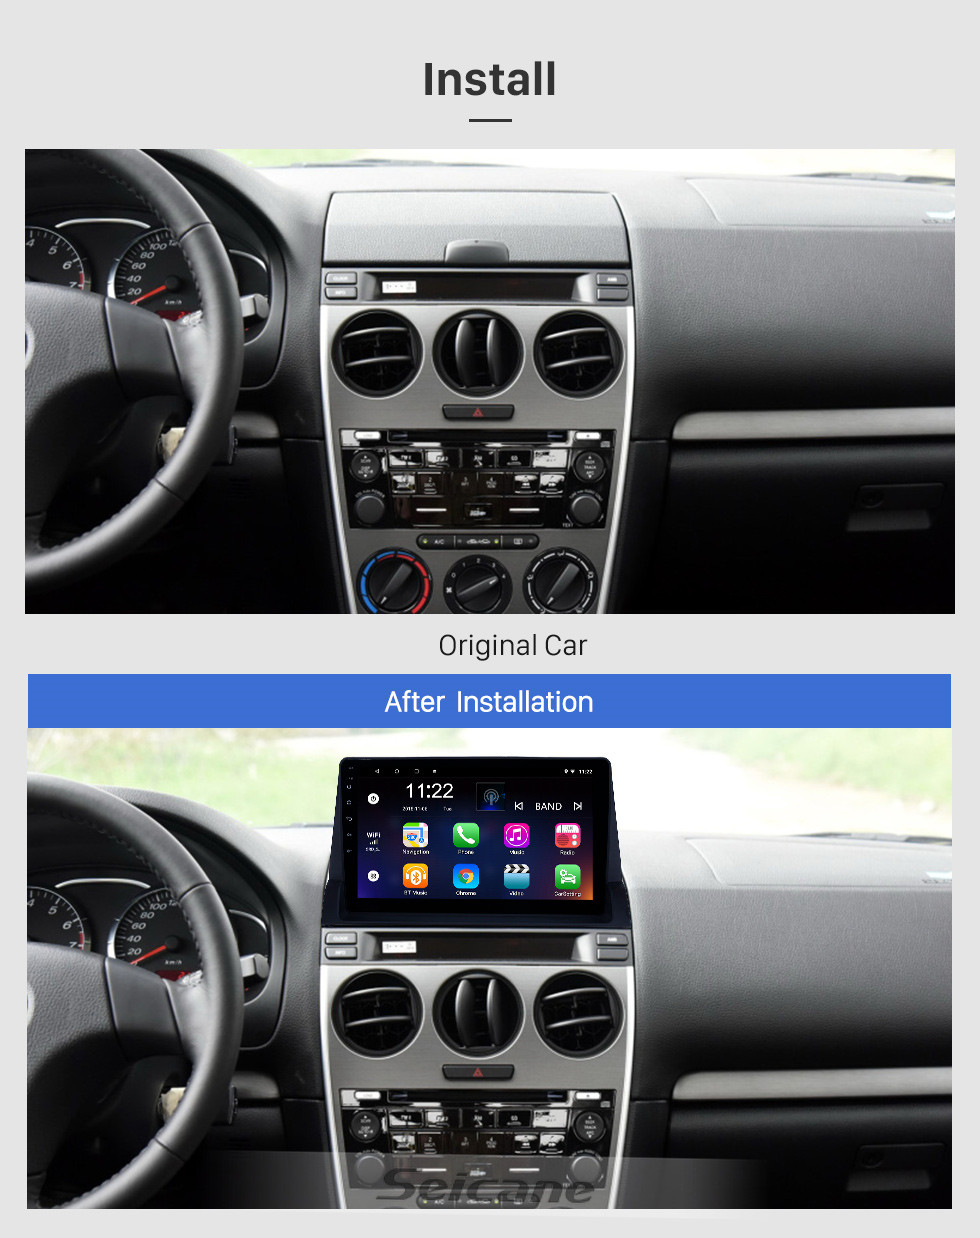 Seicane HD Touchscreen 10.1 inch Android 10.0 GPS Navigation Radio for 2002-2008 Old Mazda 6 with Bluetooth USB support Carplay Mirror Link Backup camera